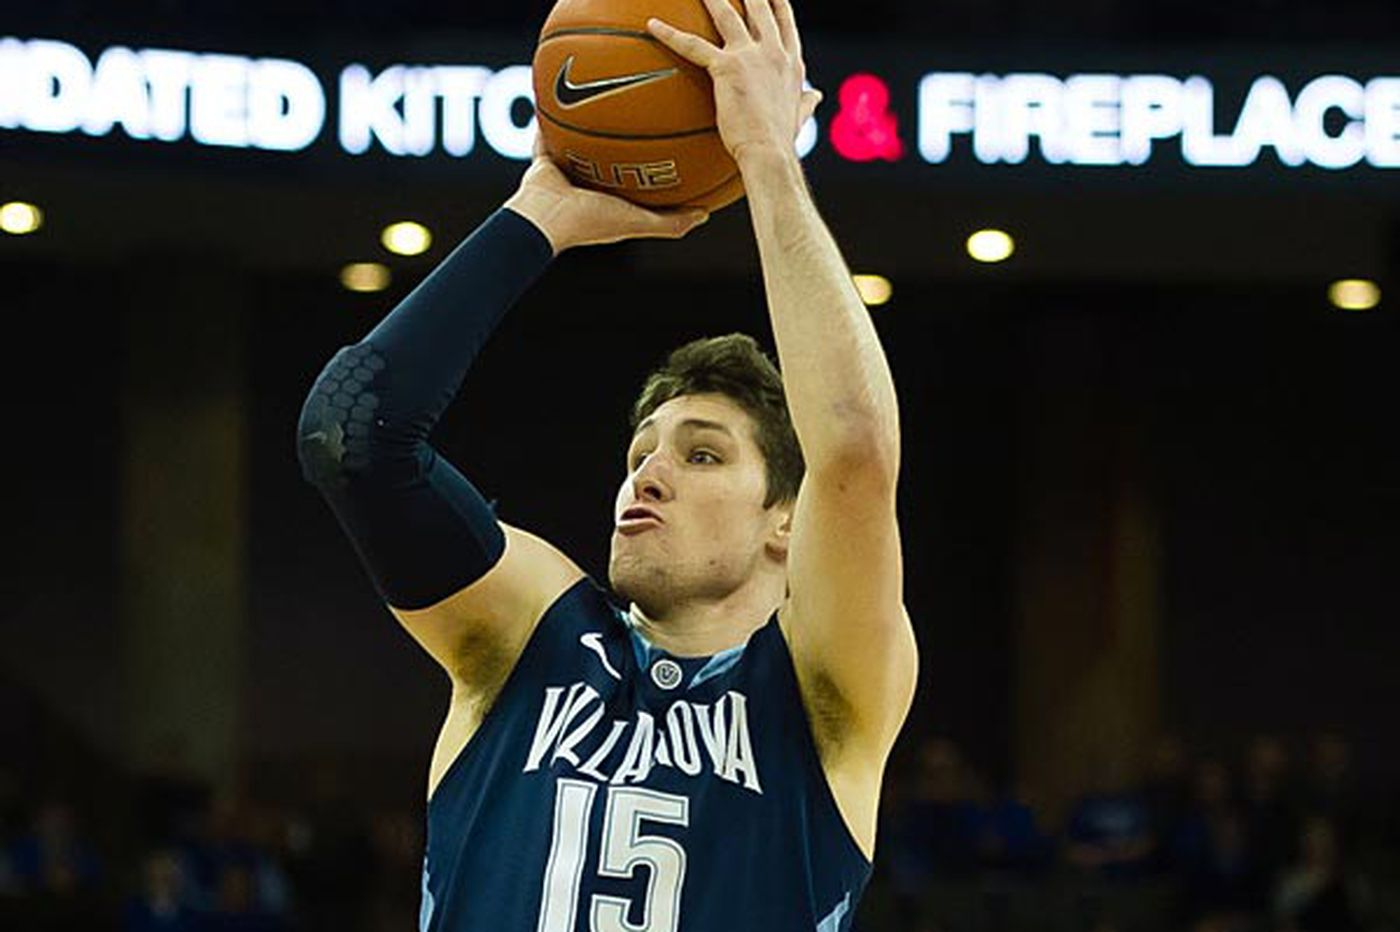 Arcidiacono is Big East co-player of the year